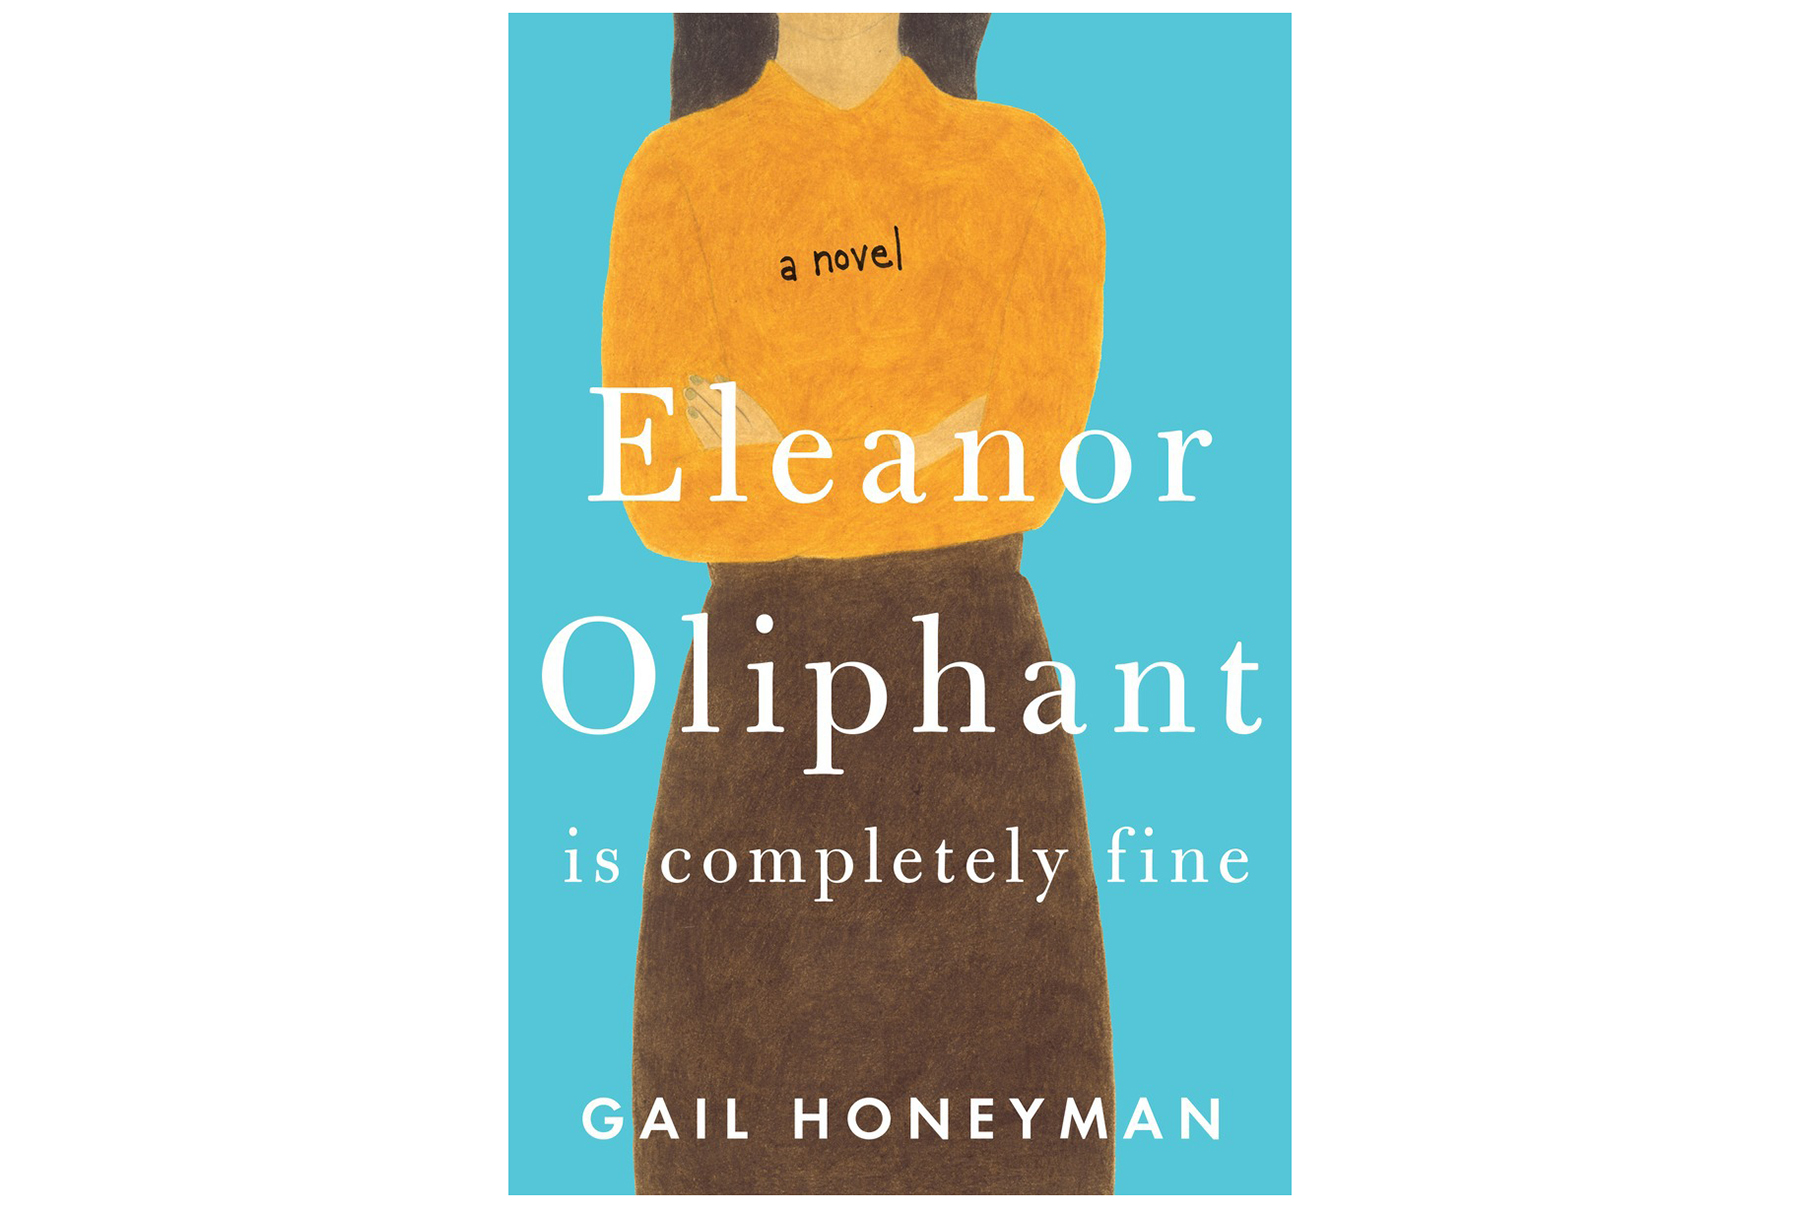 Clone of Eleanor Oliphant Is Completely Fine, by Gail Honeyman (Books to read sooner)